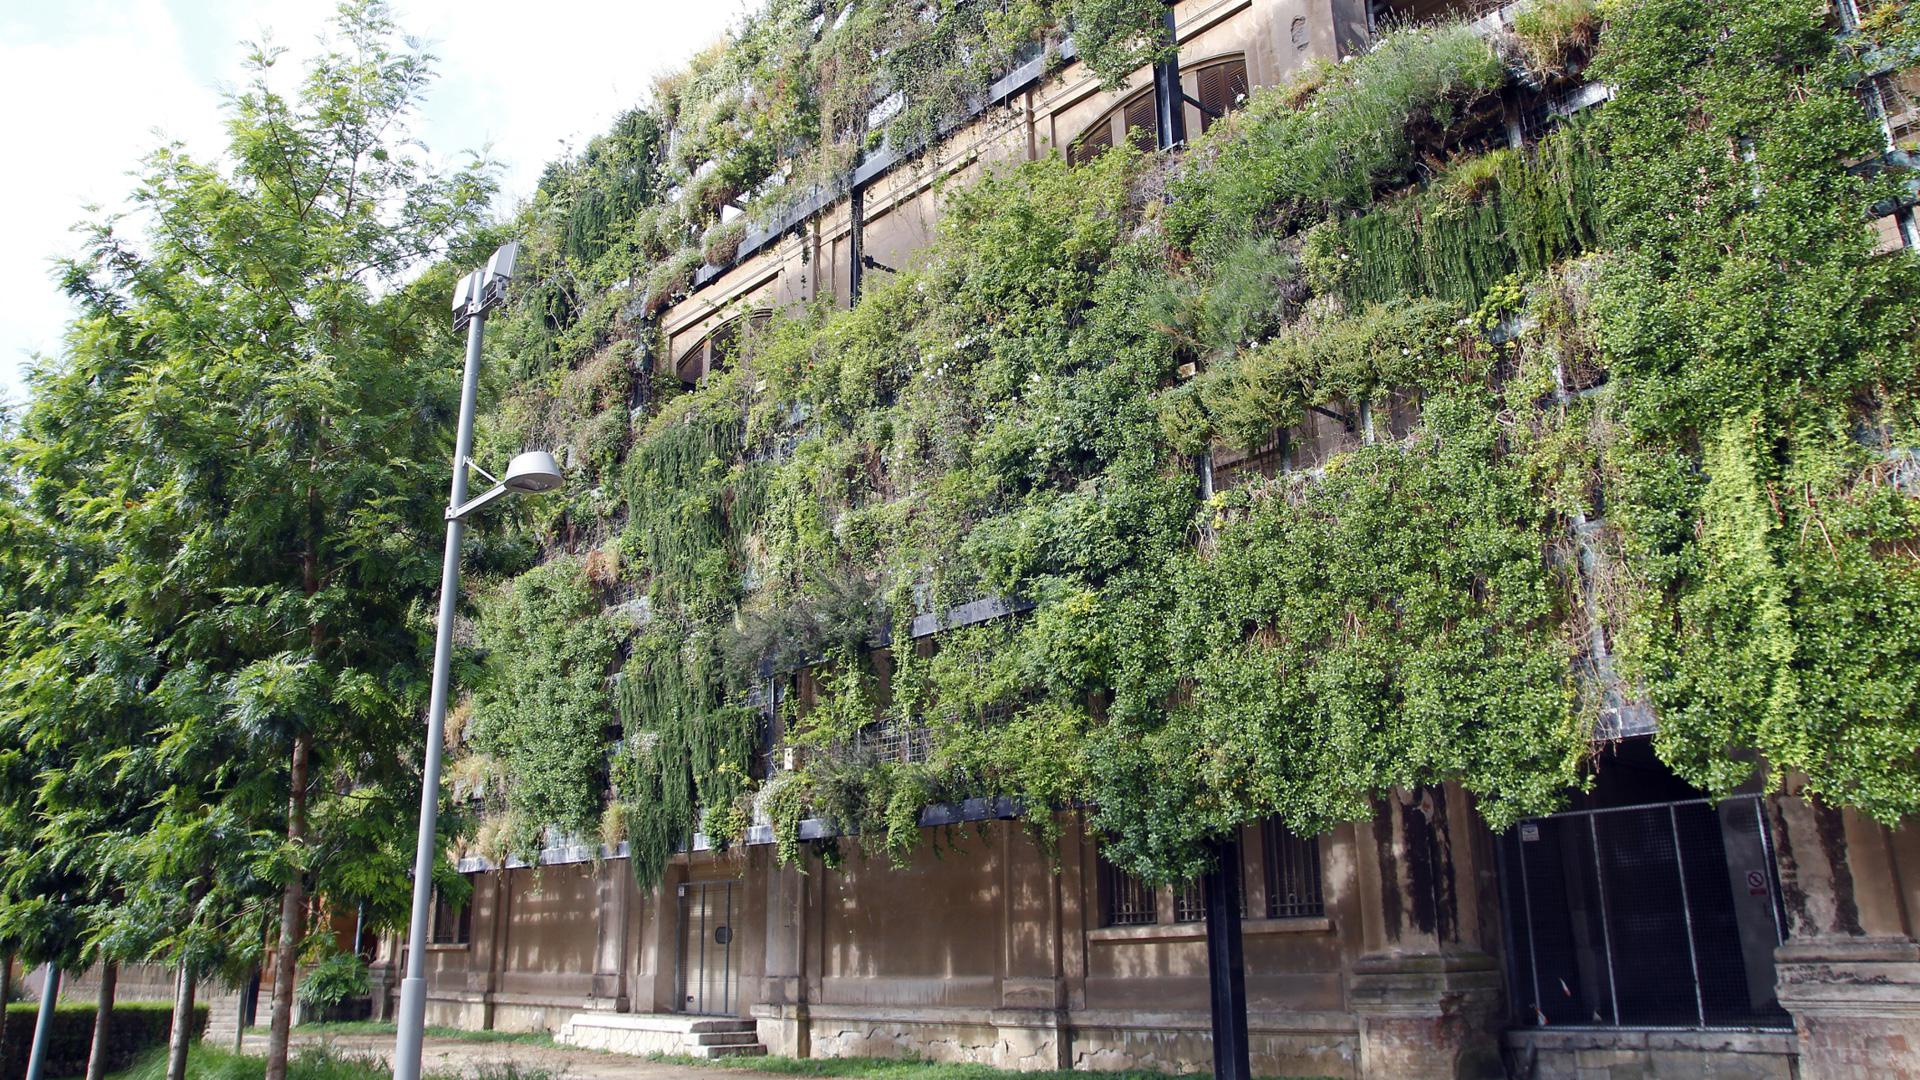 25 Vertical gardens that will take your breath away